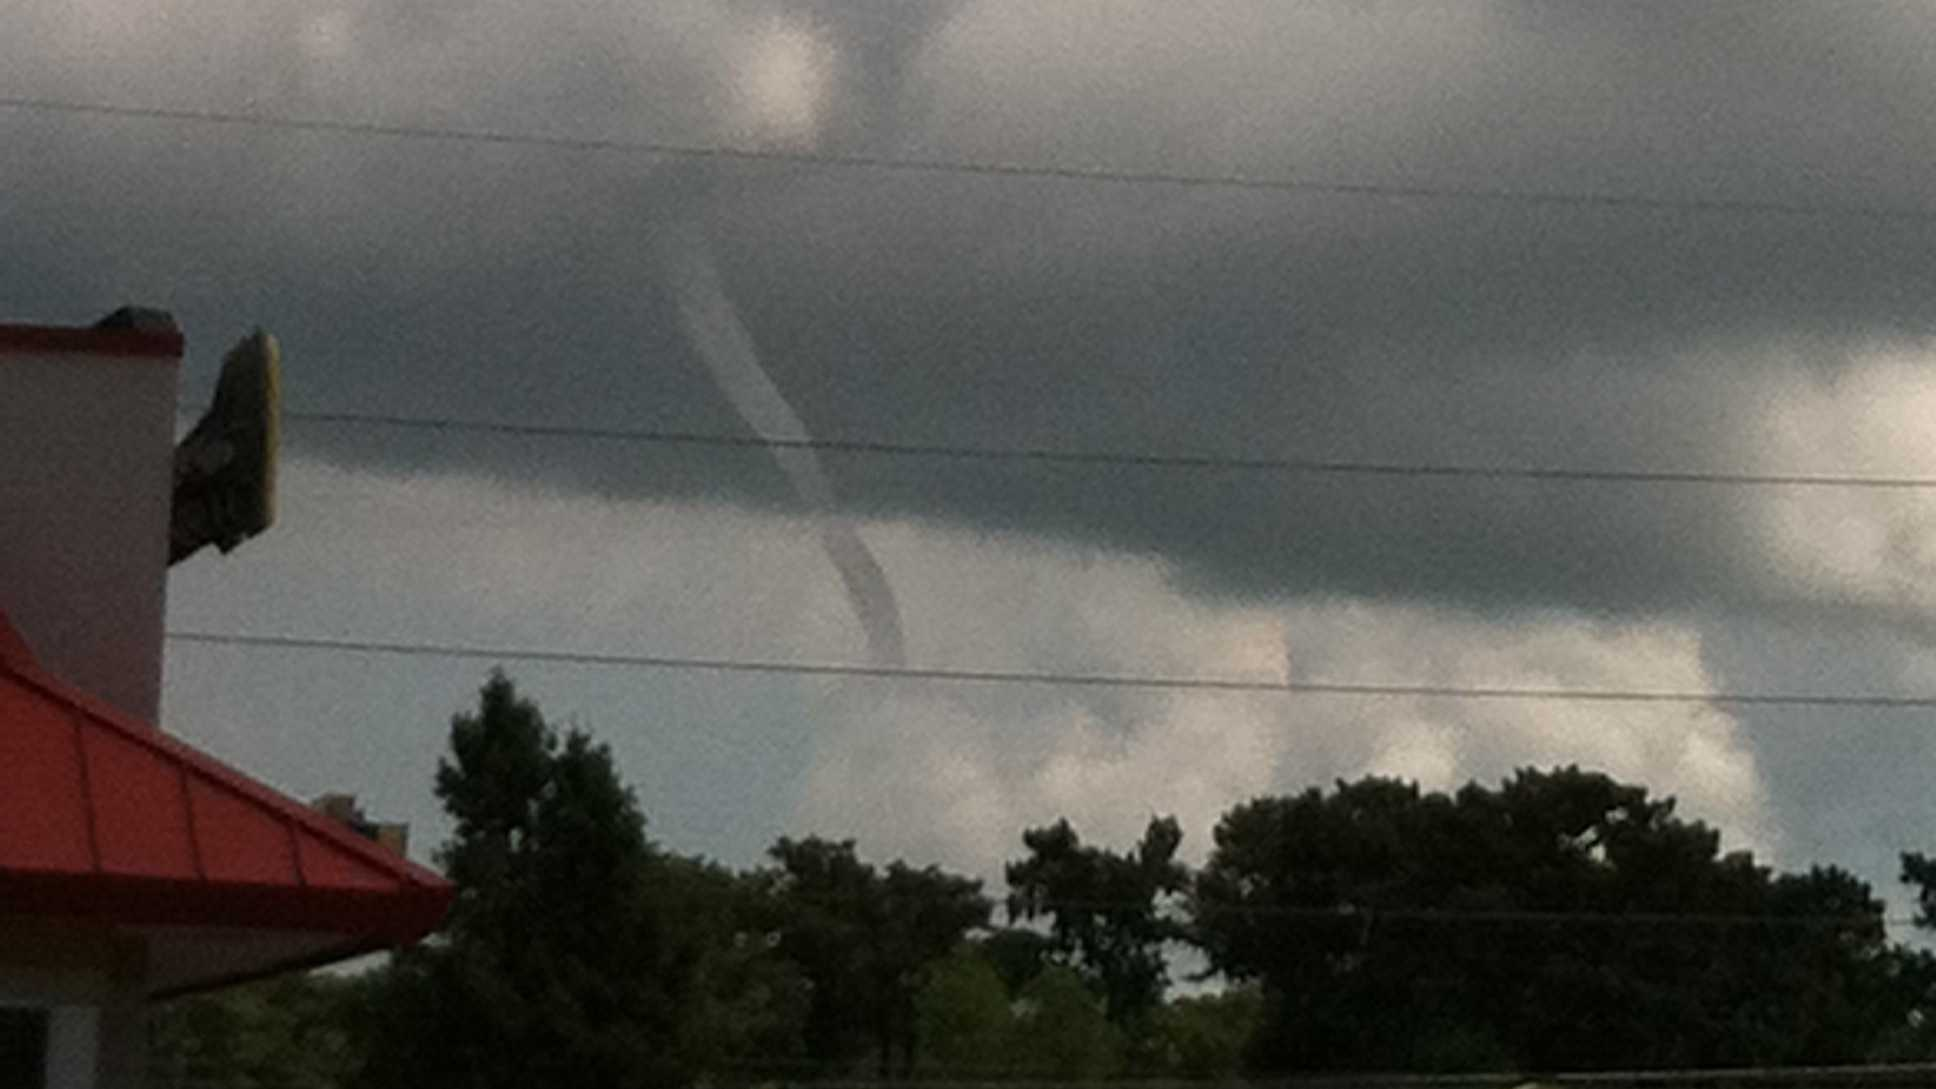 A member of WDSU.com's u local community sent this photo of a funnel cloud developing in Destrehan, La. on Monday.